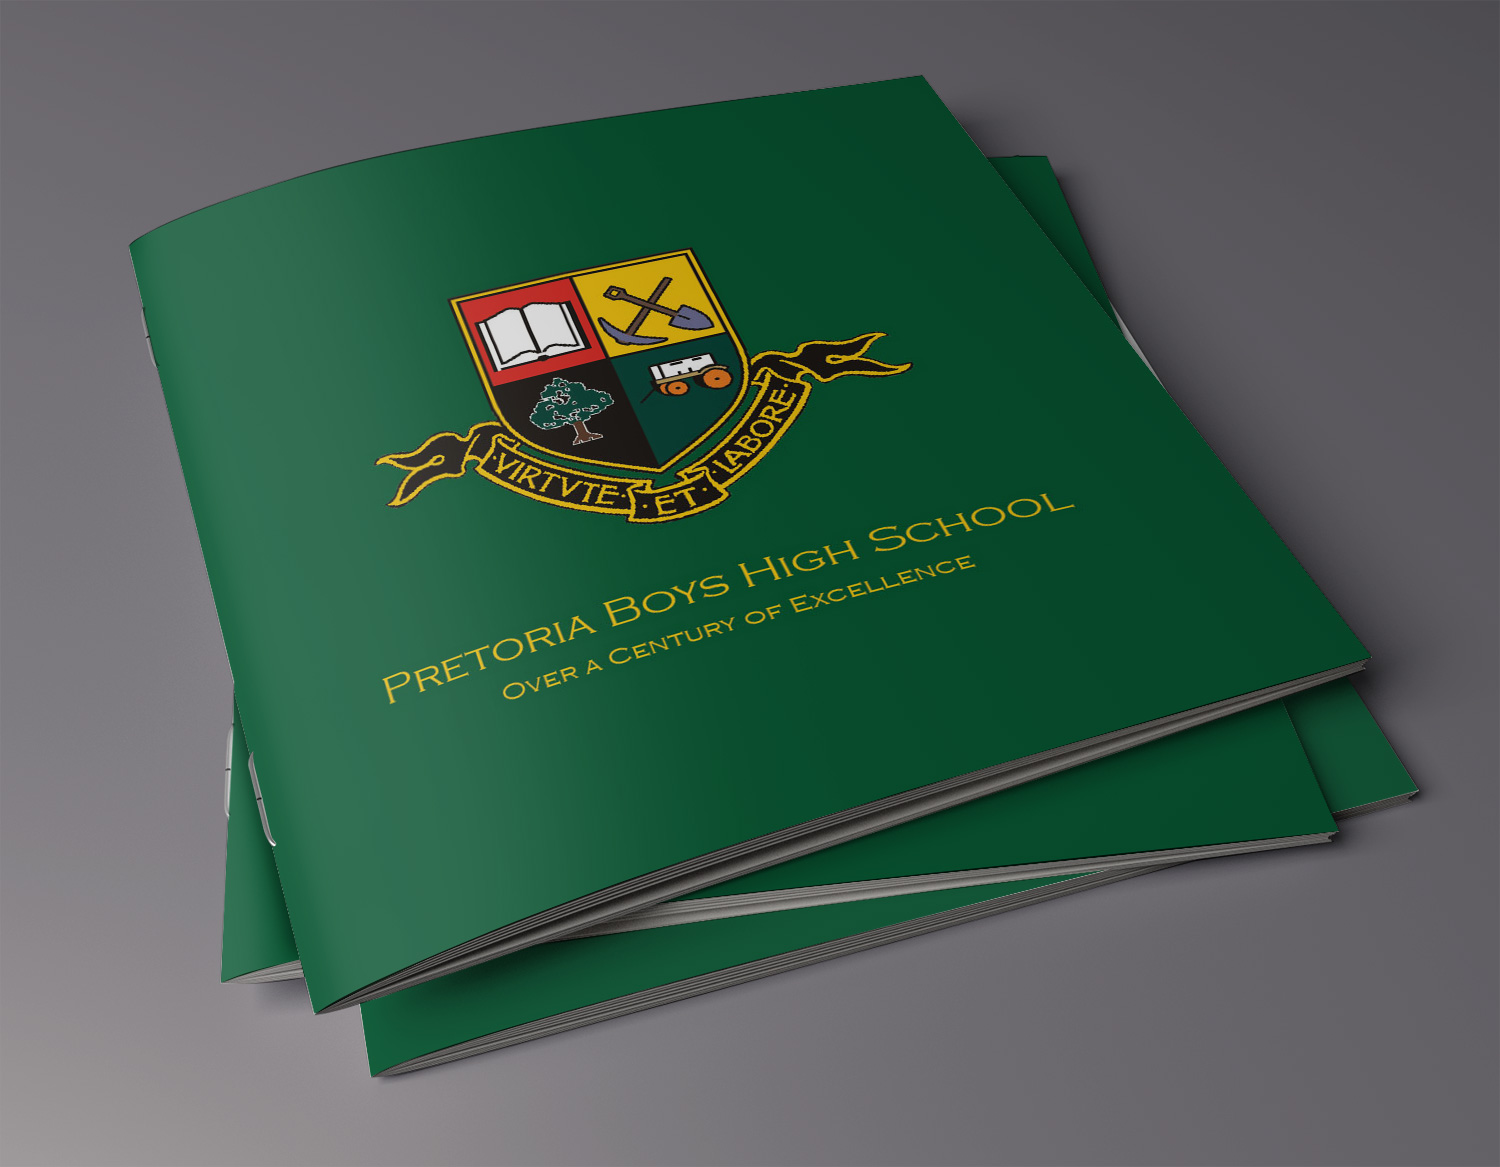 Prospectus Design for Pretoria Boys High